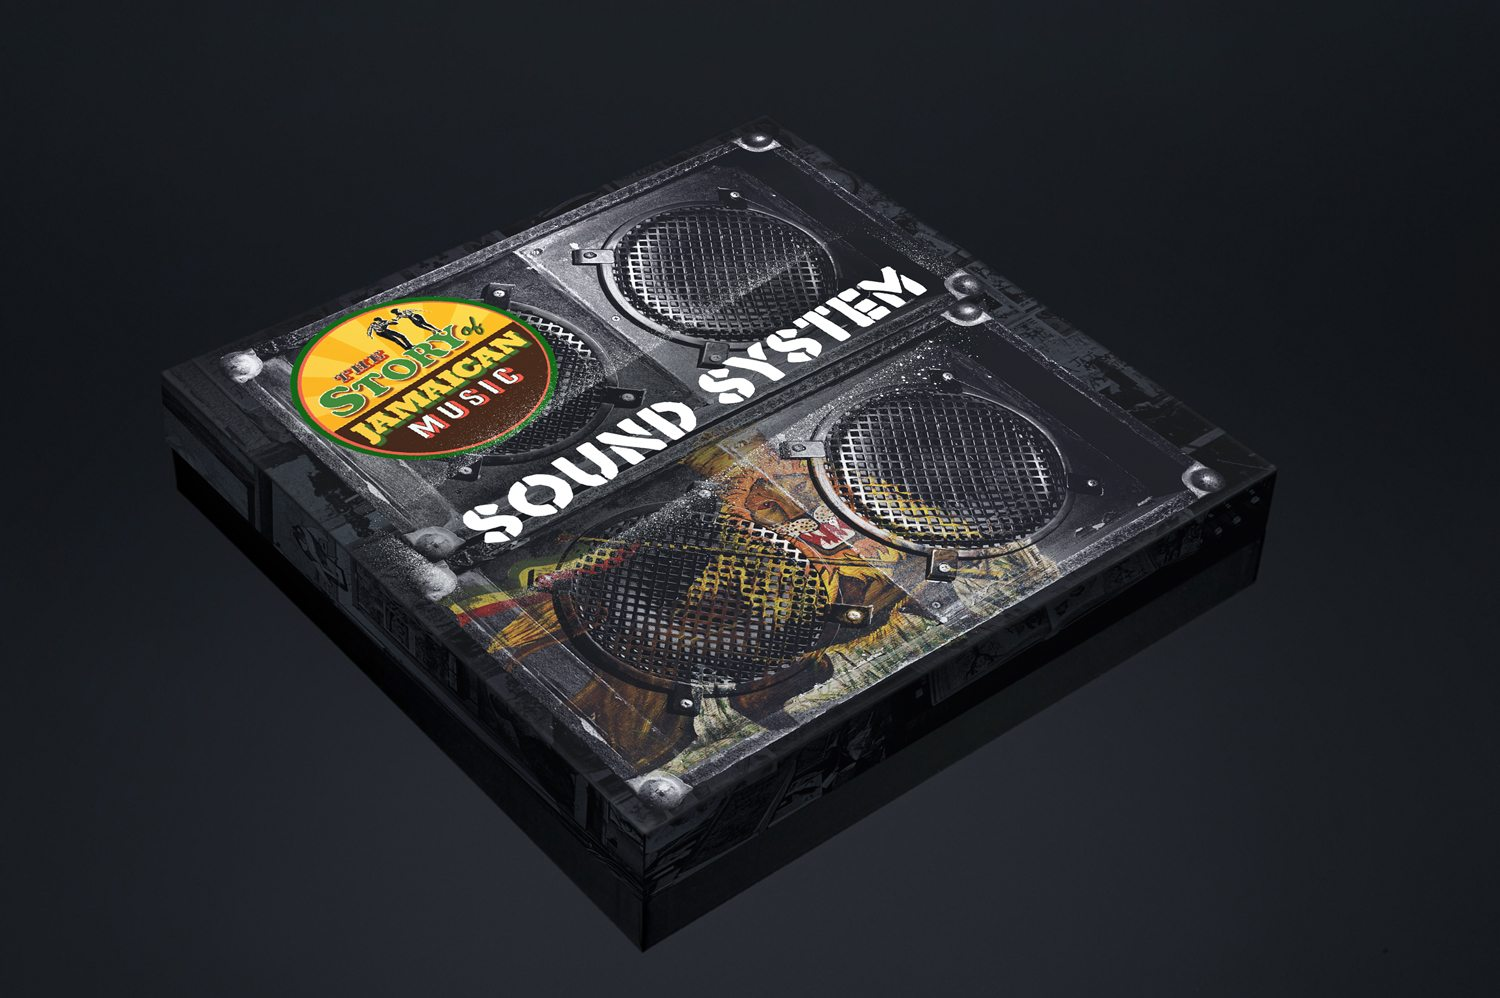 SoundSystem_box